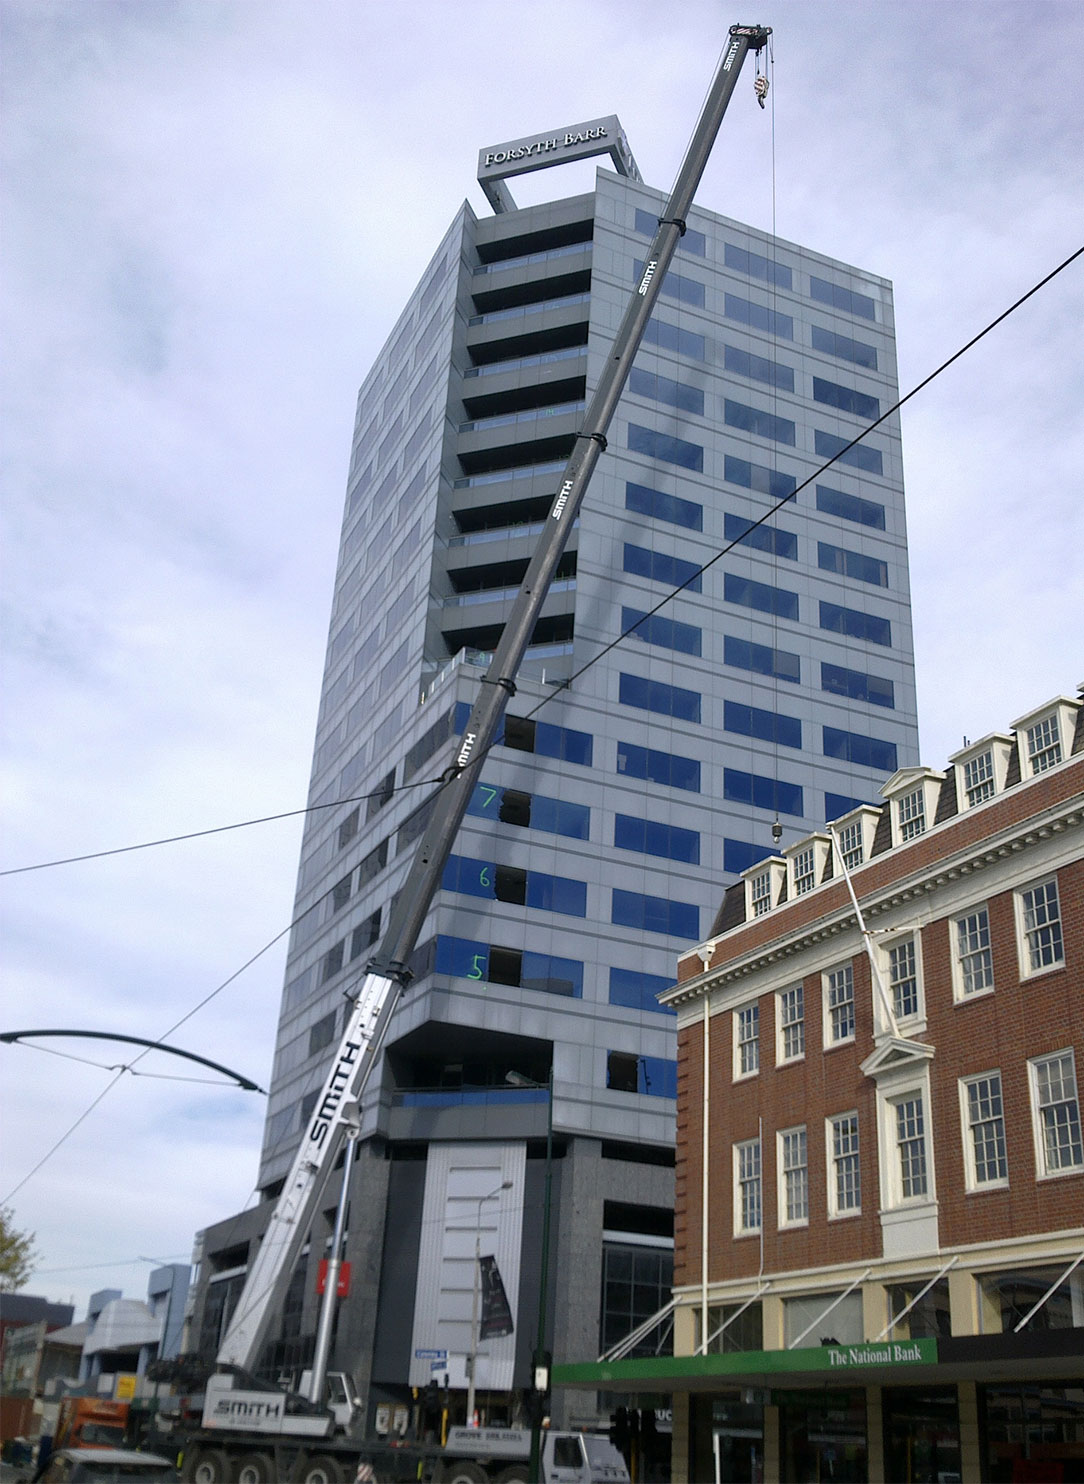 A crane helps occupants escape at Forsyth Barr